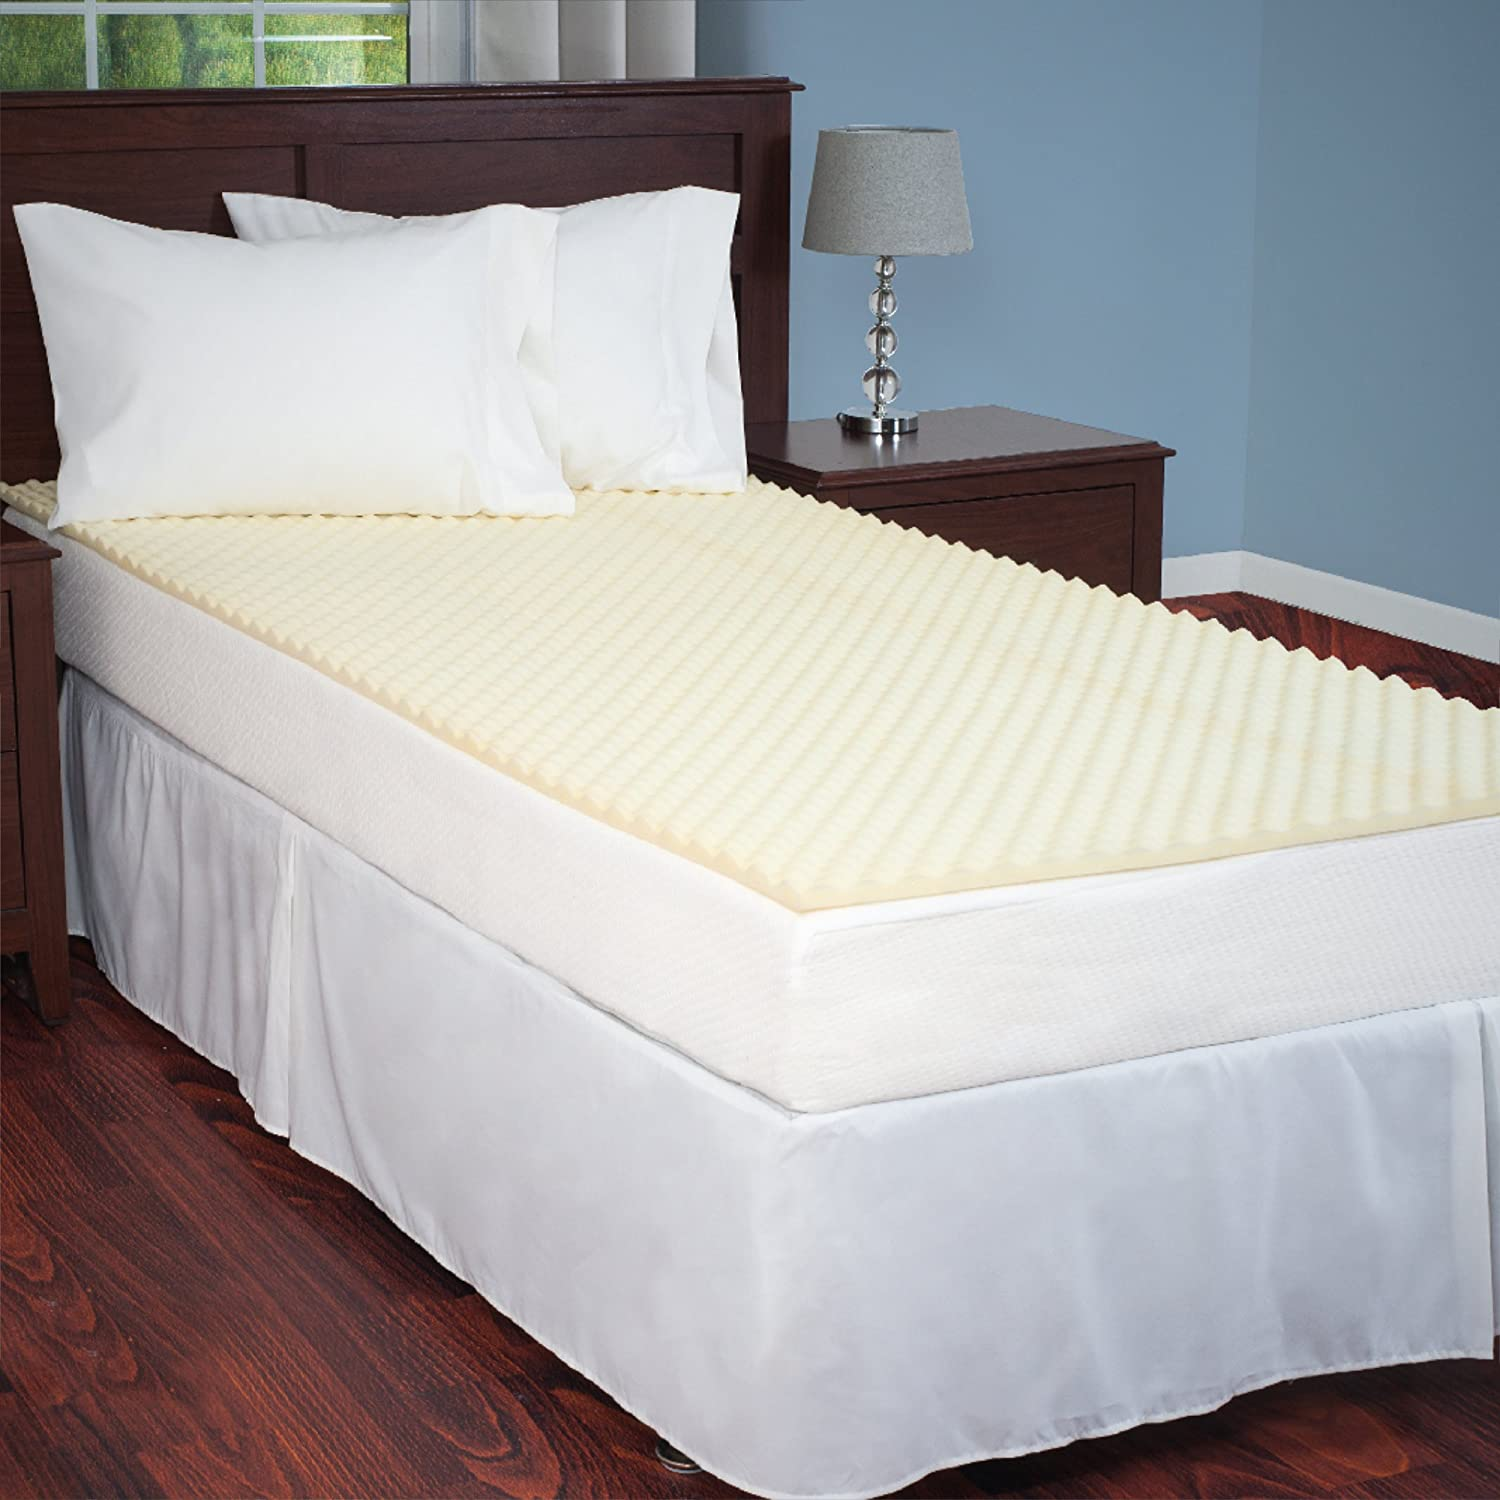 twin bed mattress topper Amazon.com: Egg Crate Mattress Topper Twin XL designed to add  twin bed mattress topper